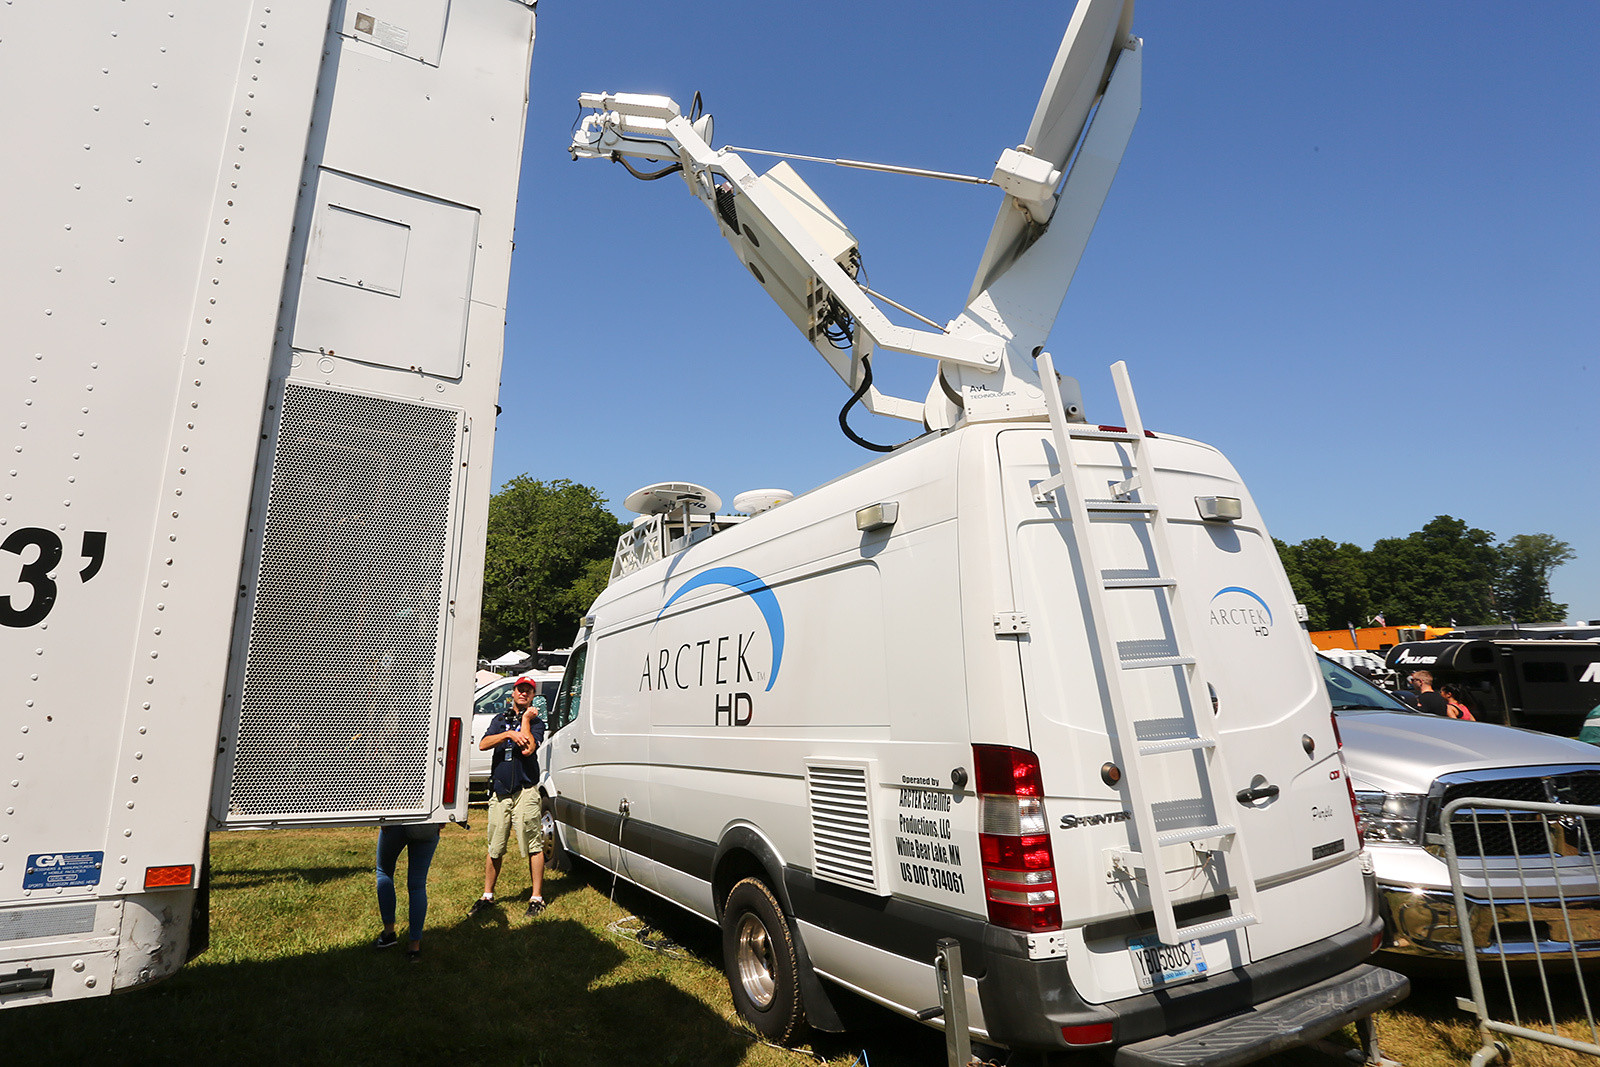 This van handles the video uplink, and there's also a separate dish so that he can preview what the viewers are seeing.